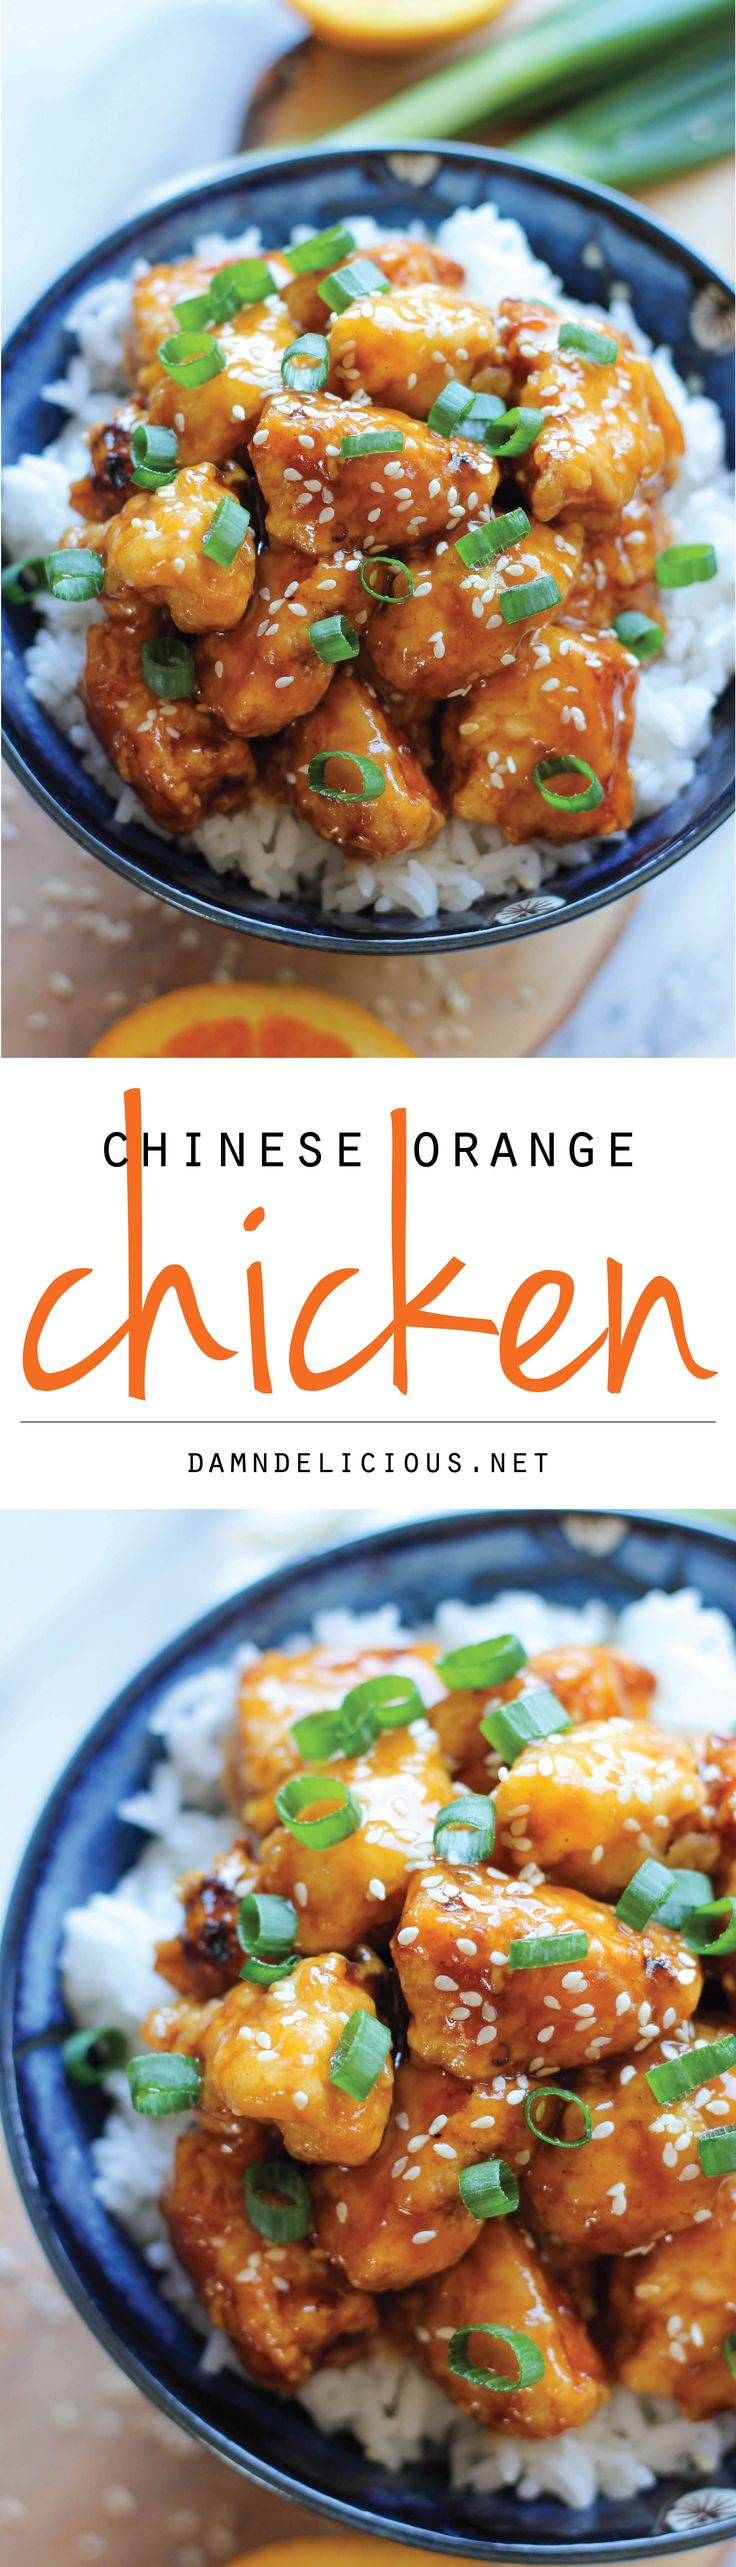 Chinese Orange Chicken - Not even Panda Express can beat this homemade orange chicken!